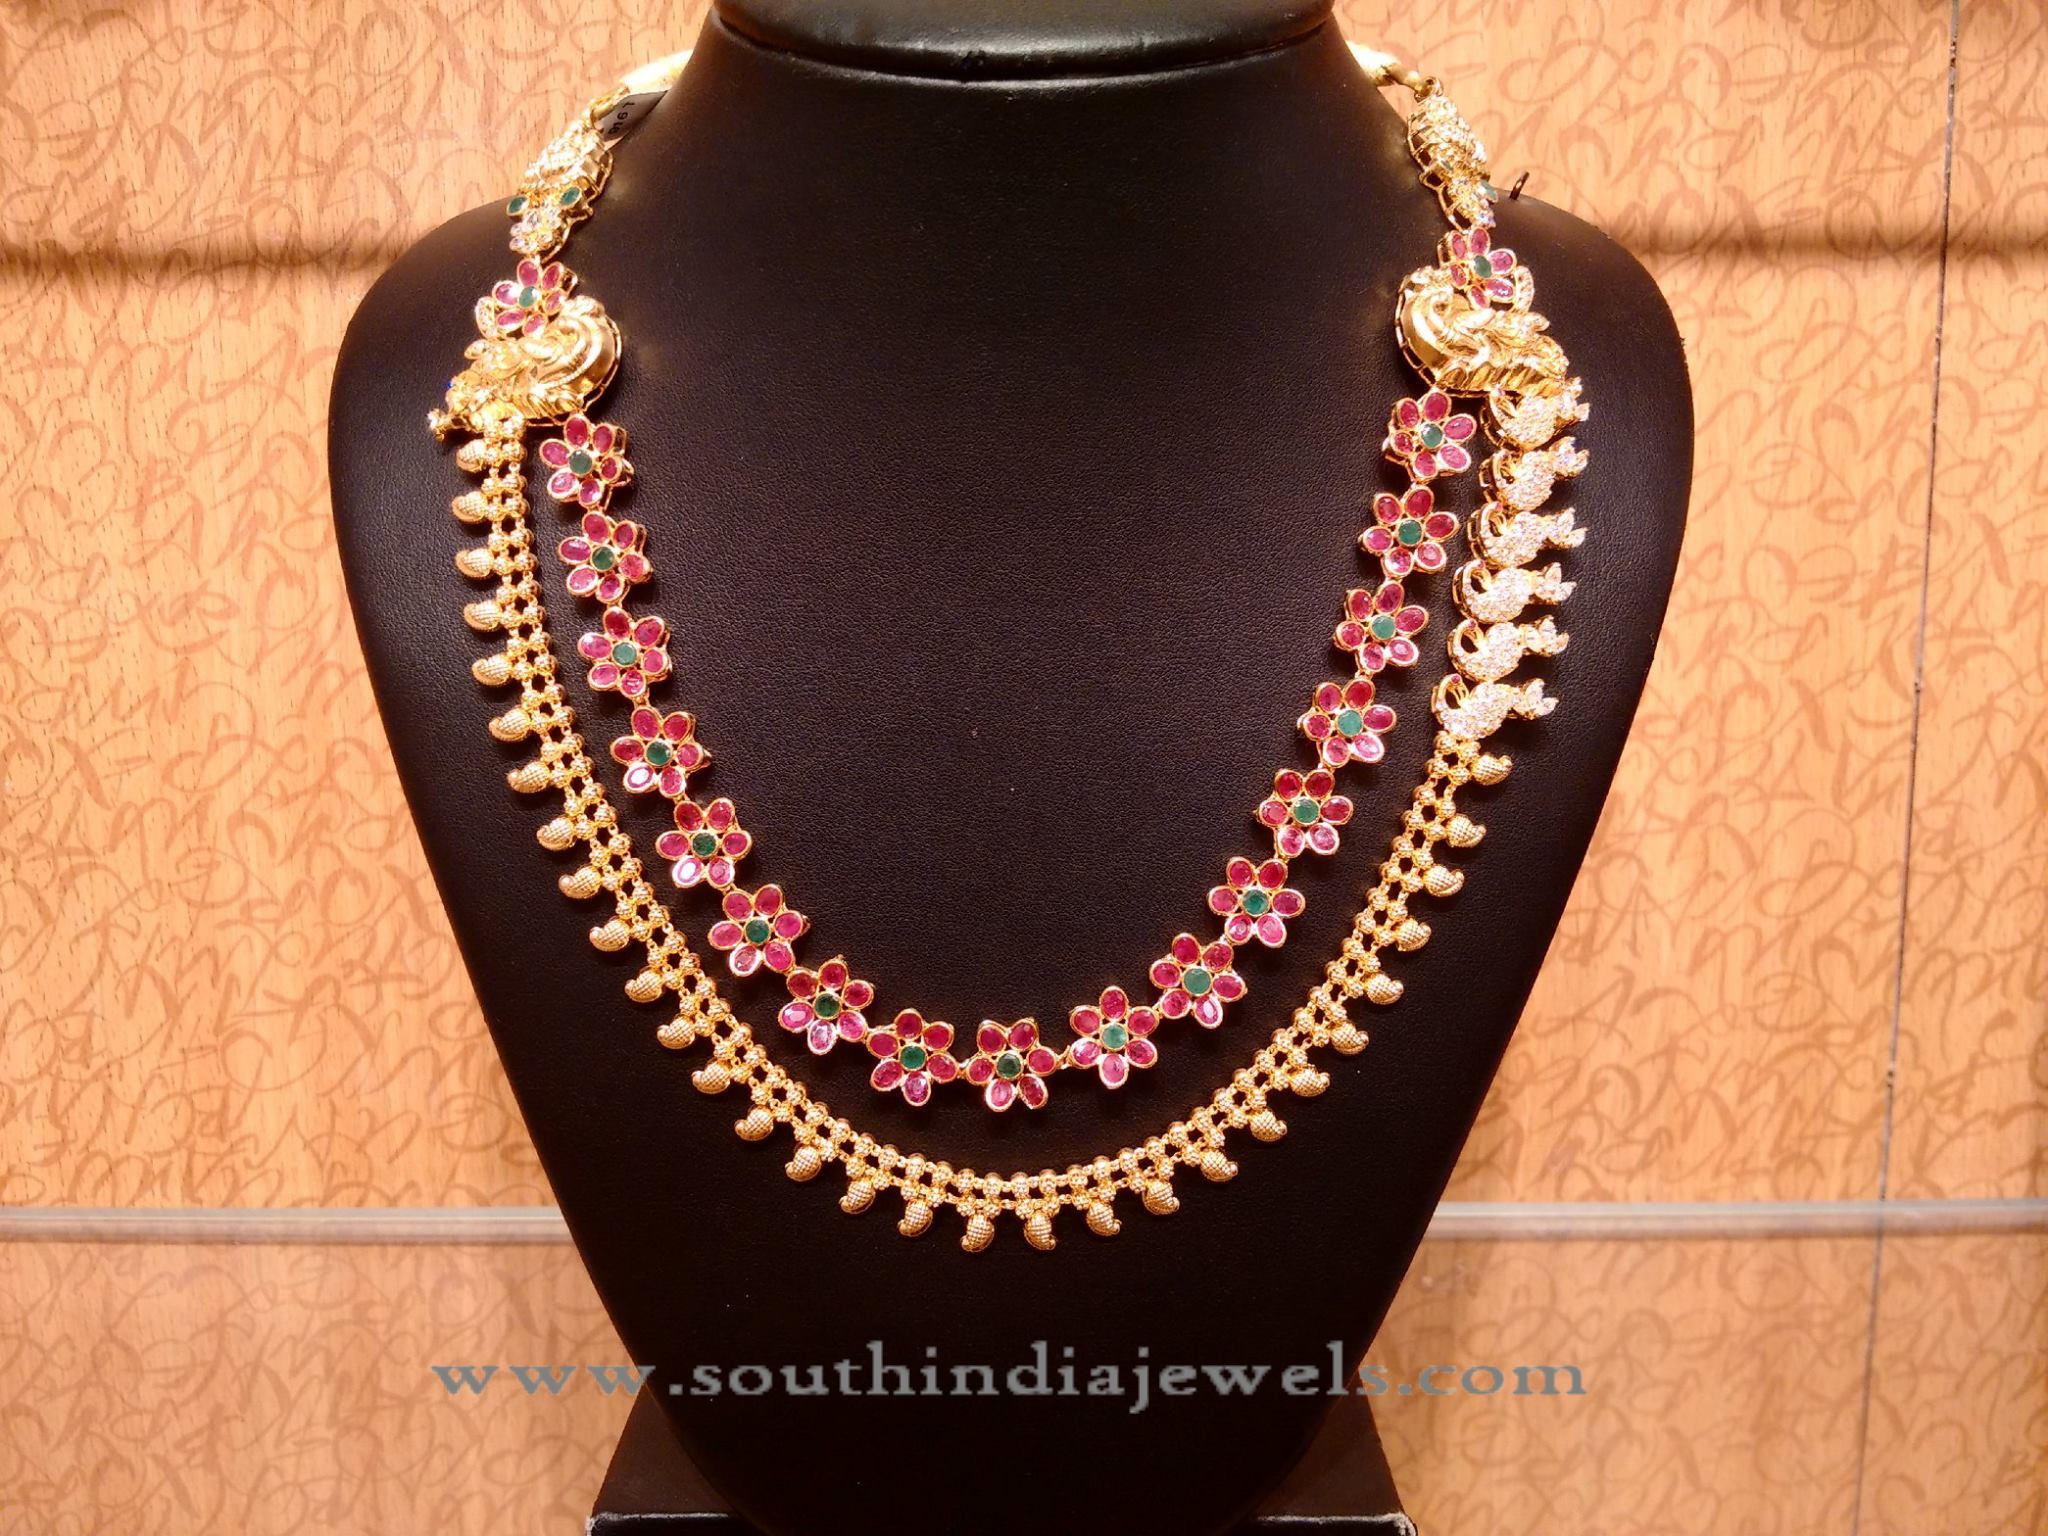 Greatest Gold Ruby Multi Layer Necklace with Side Locket ~ South India Jewels GZ52